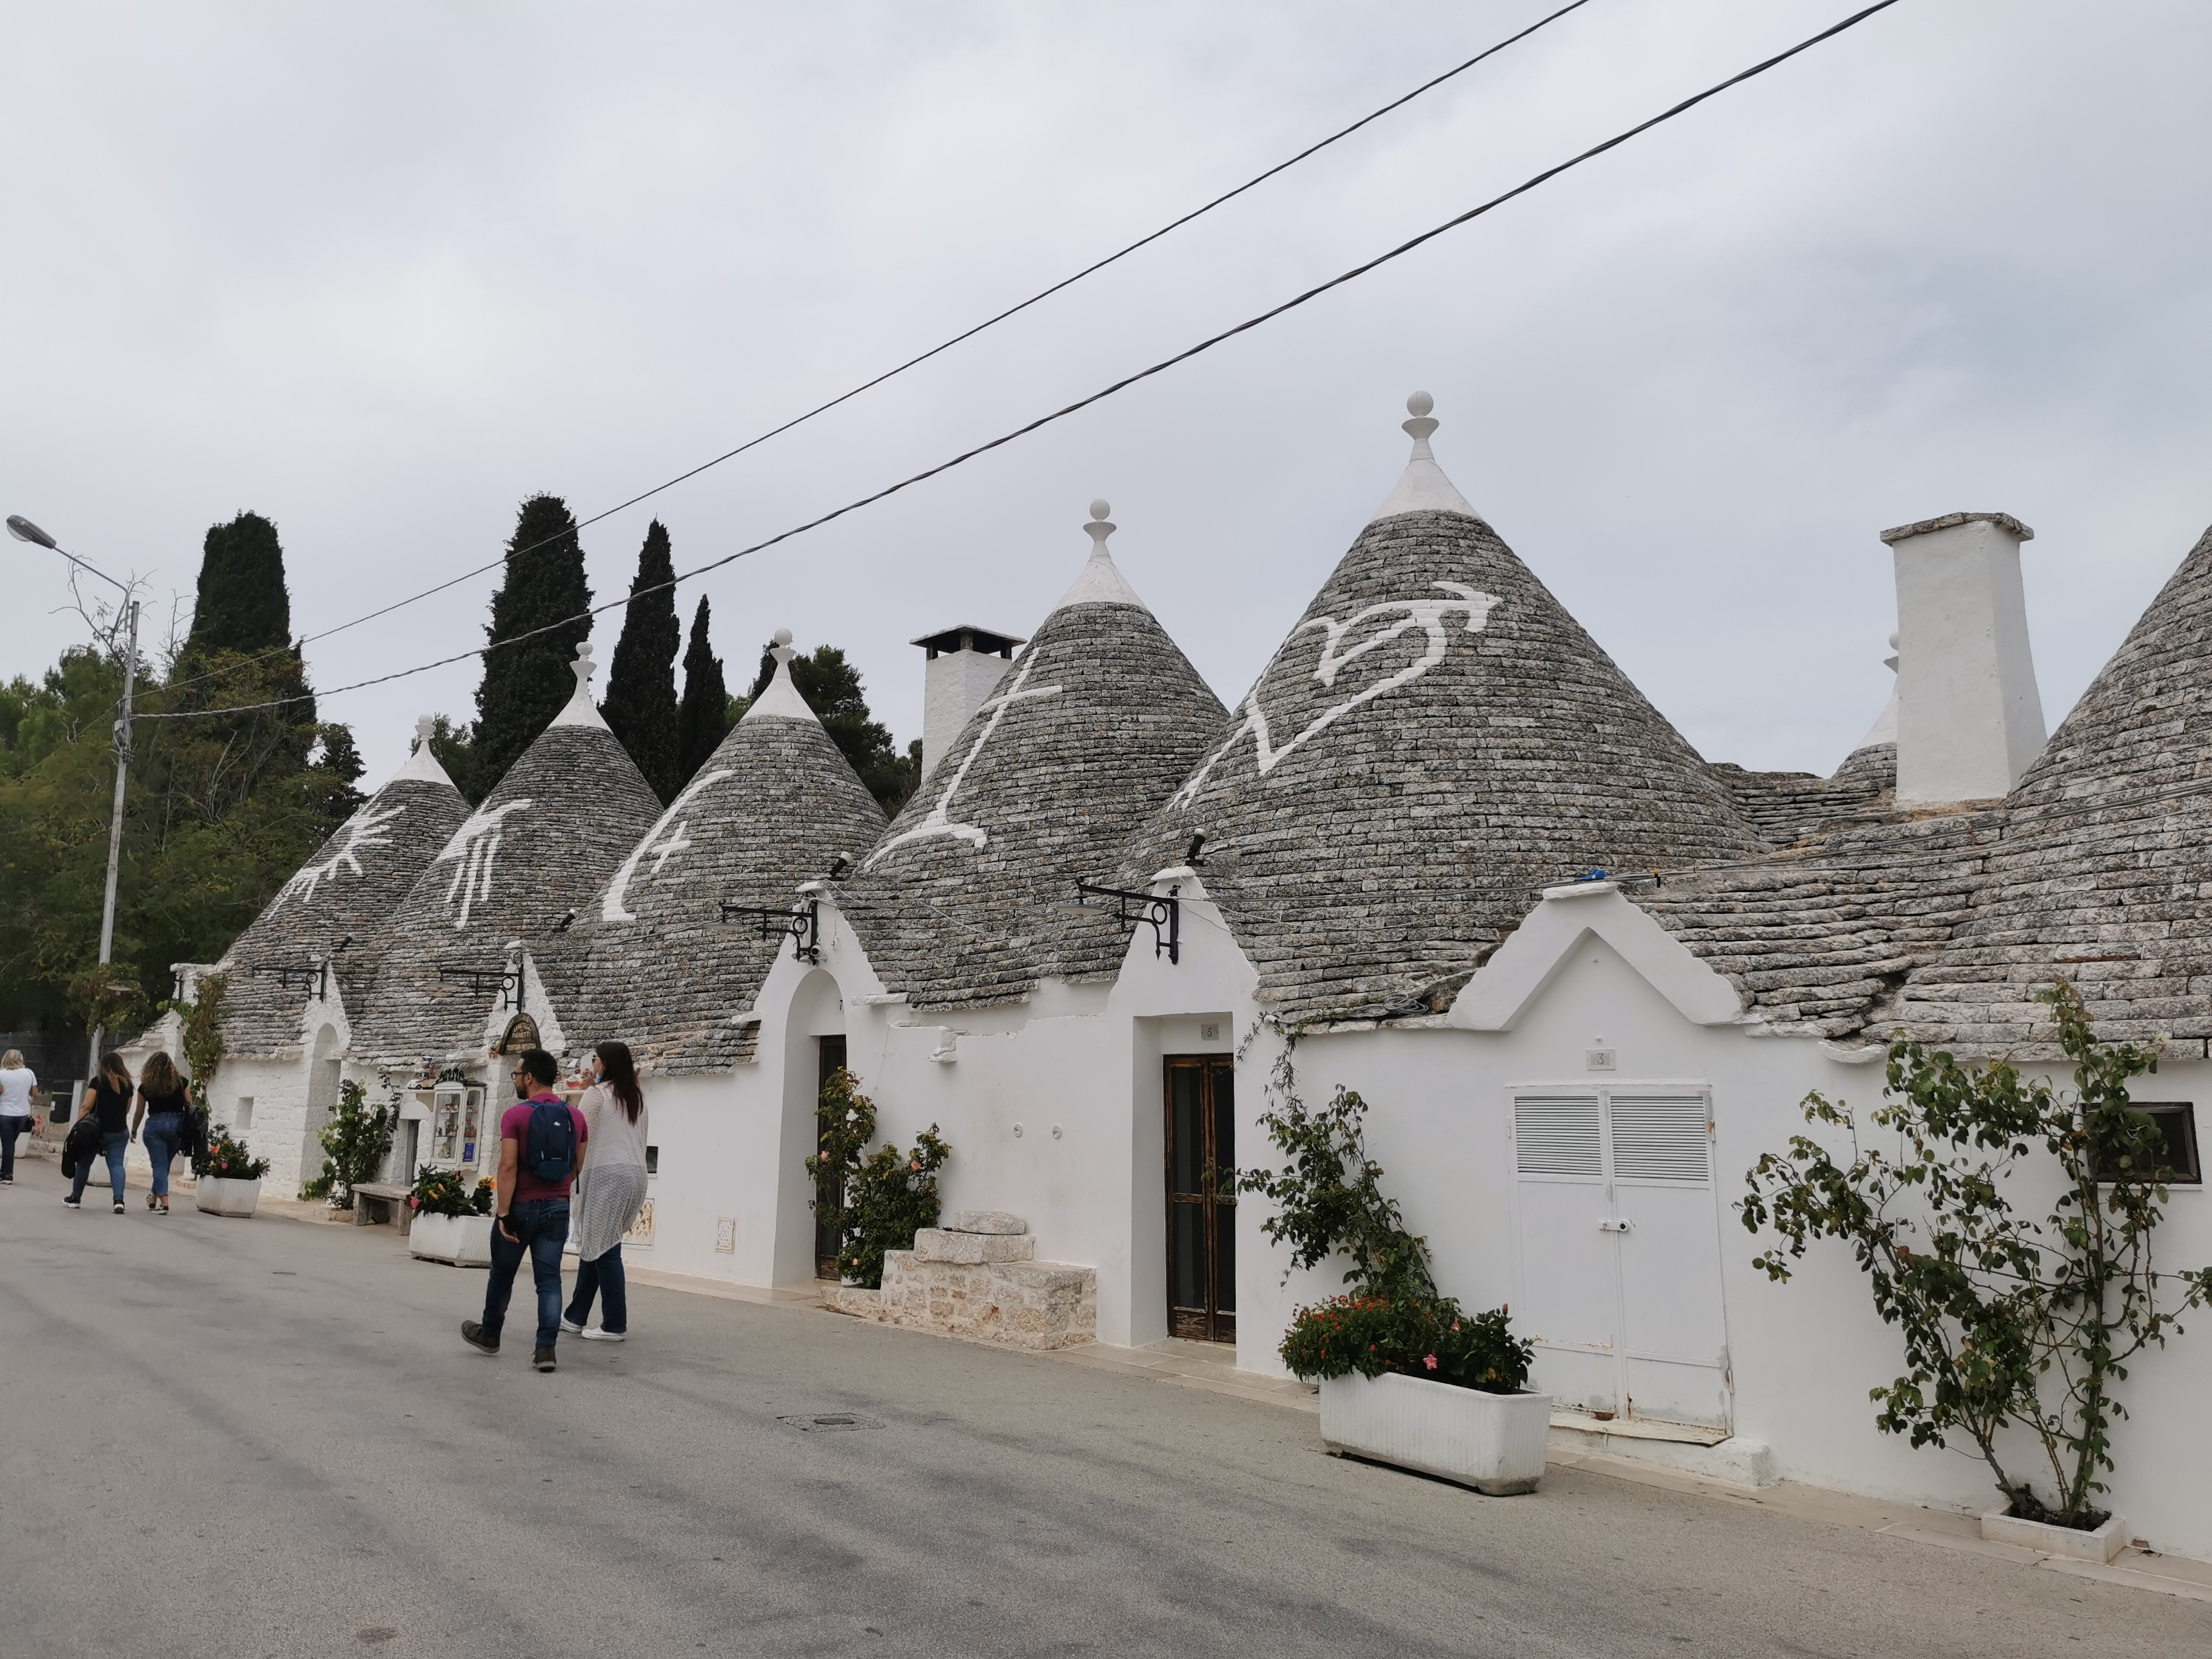 The trulli of Alberobello – stone huts with conical roofs